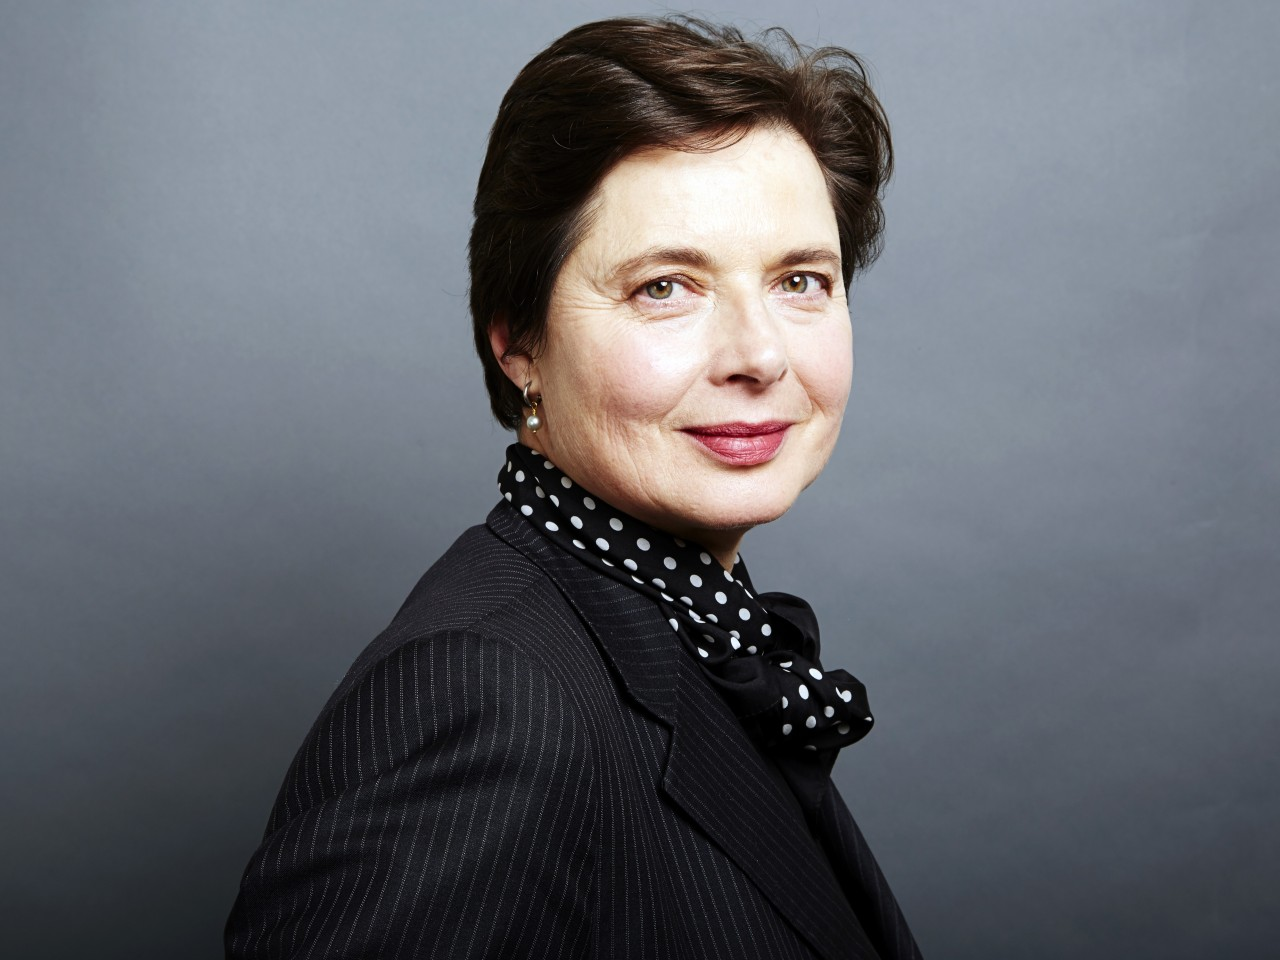 Isabella Rossellini earned a  million dollar salary, leaving the net worth at 65 million in 2017